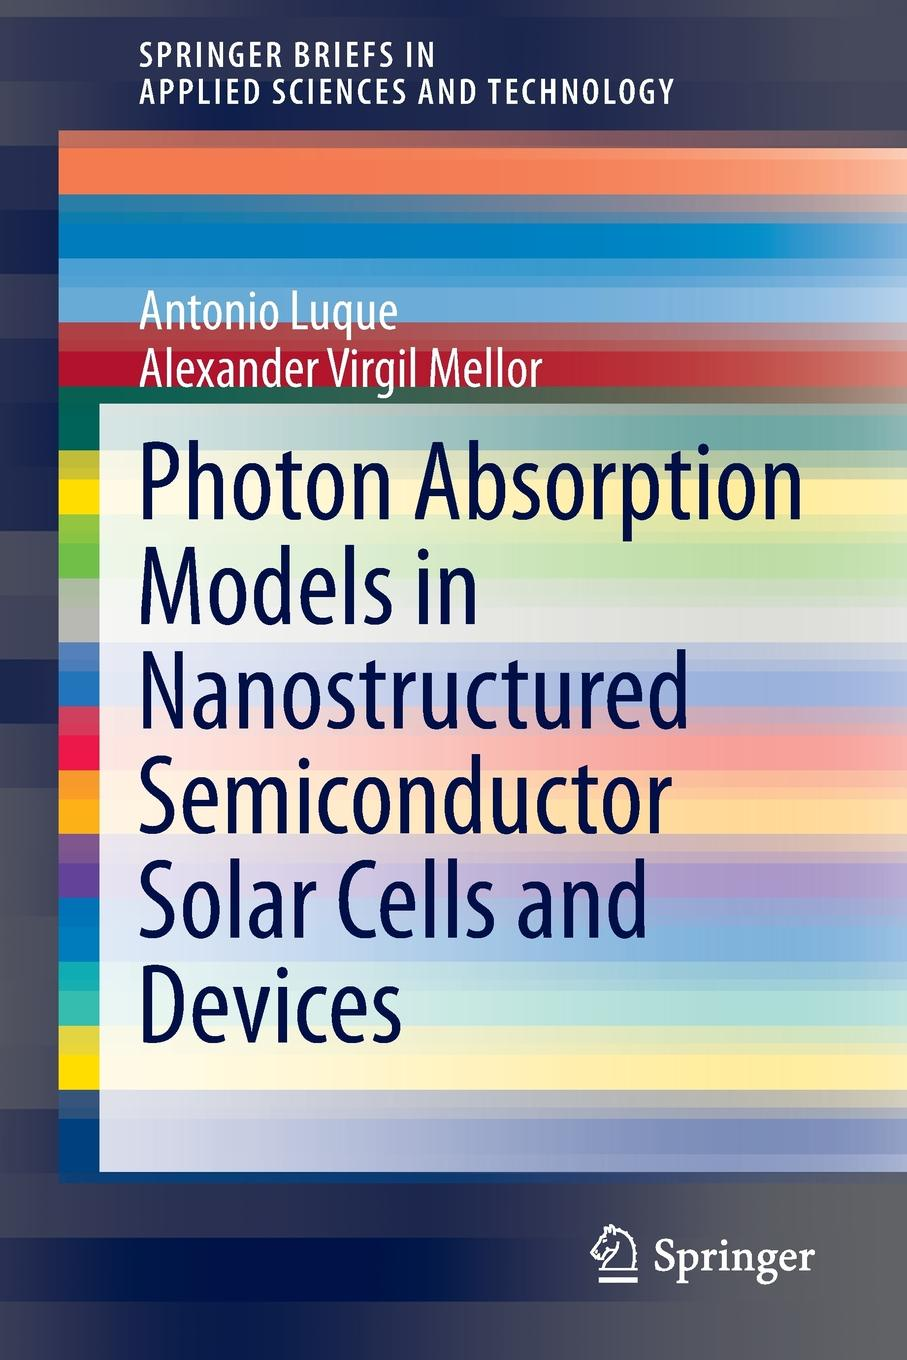 цена на Antonio Luque, Alexander Virgil Mellor Photon Absorption Models in Nanostructured Semiconductor Solar Cells and Devices